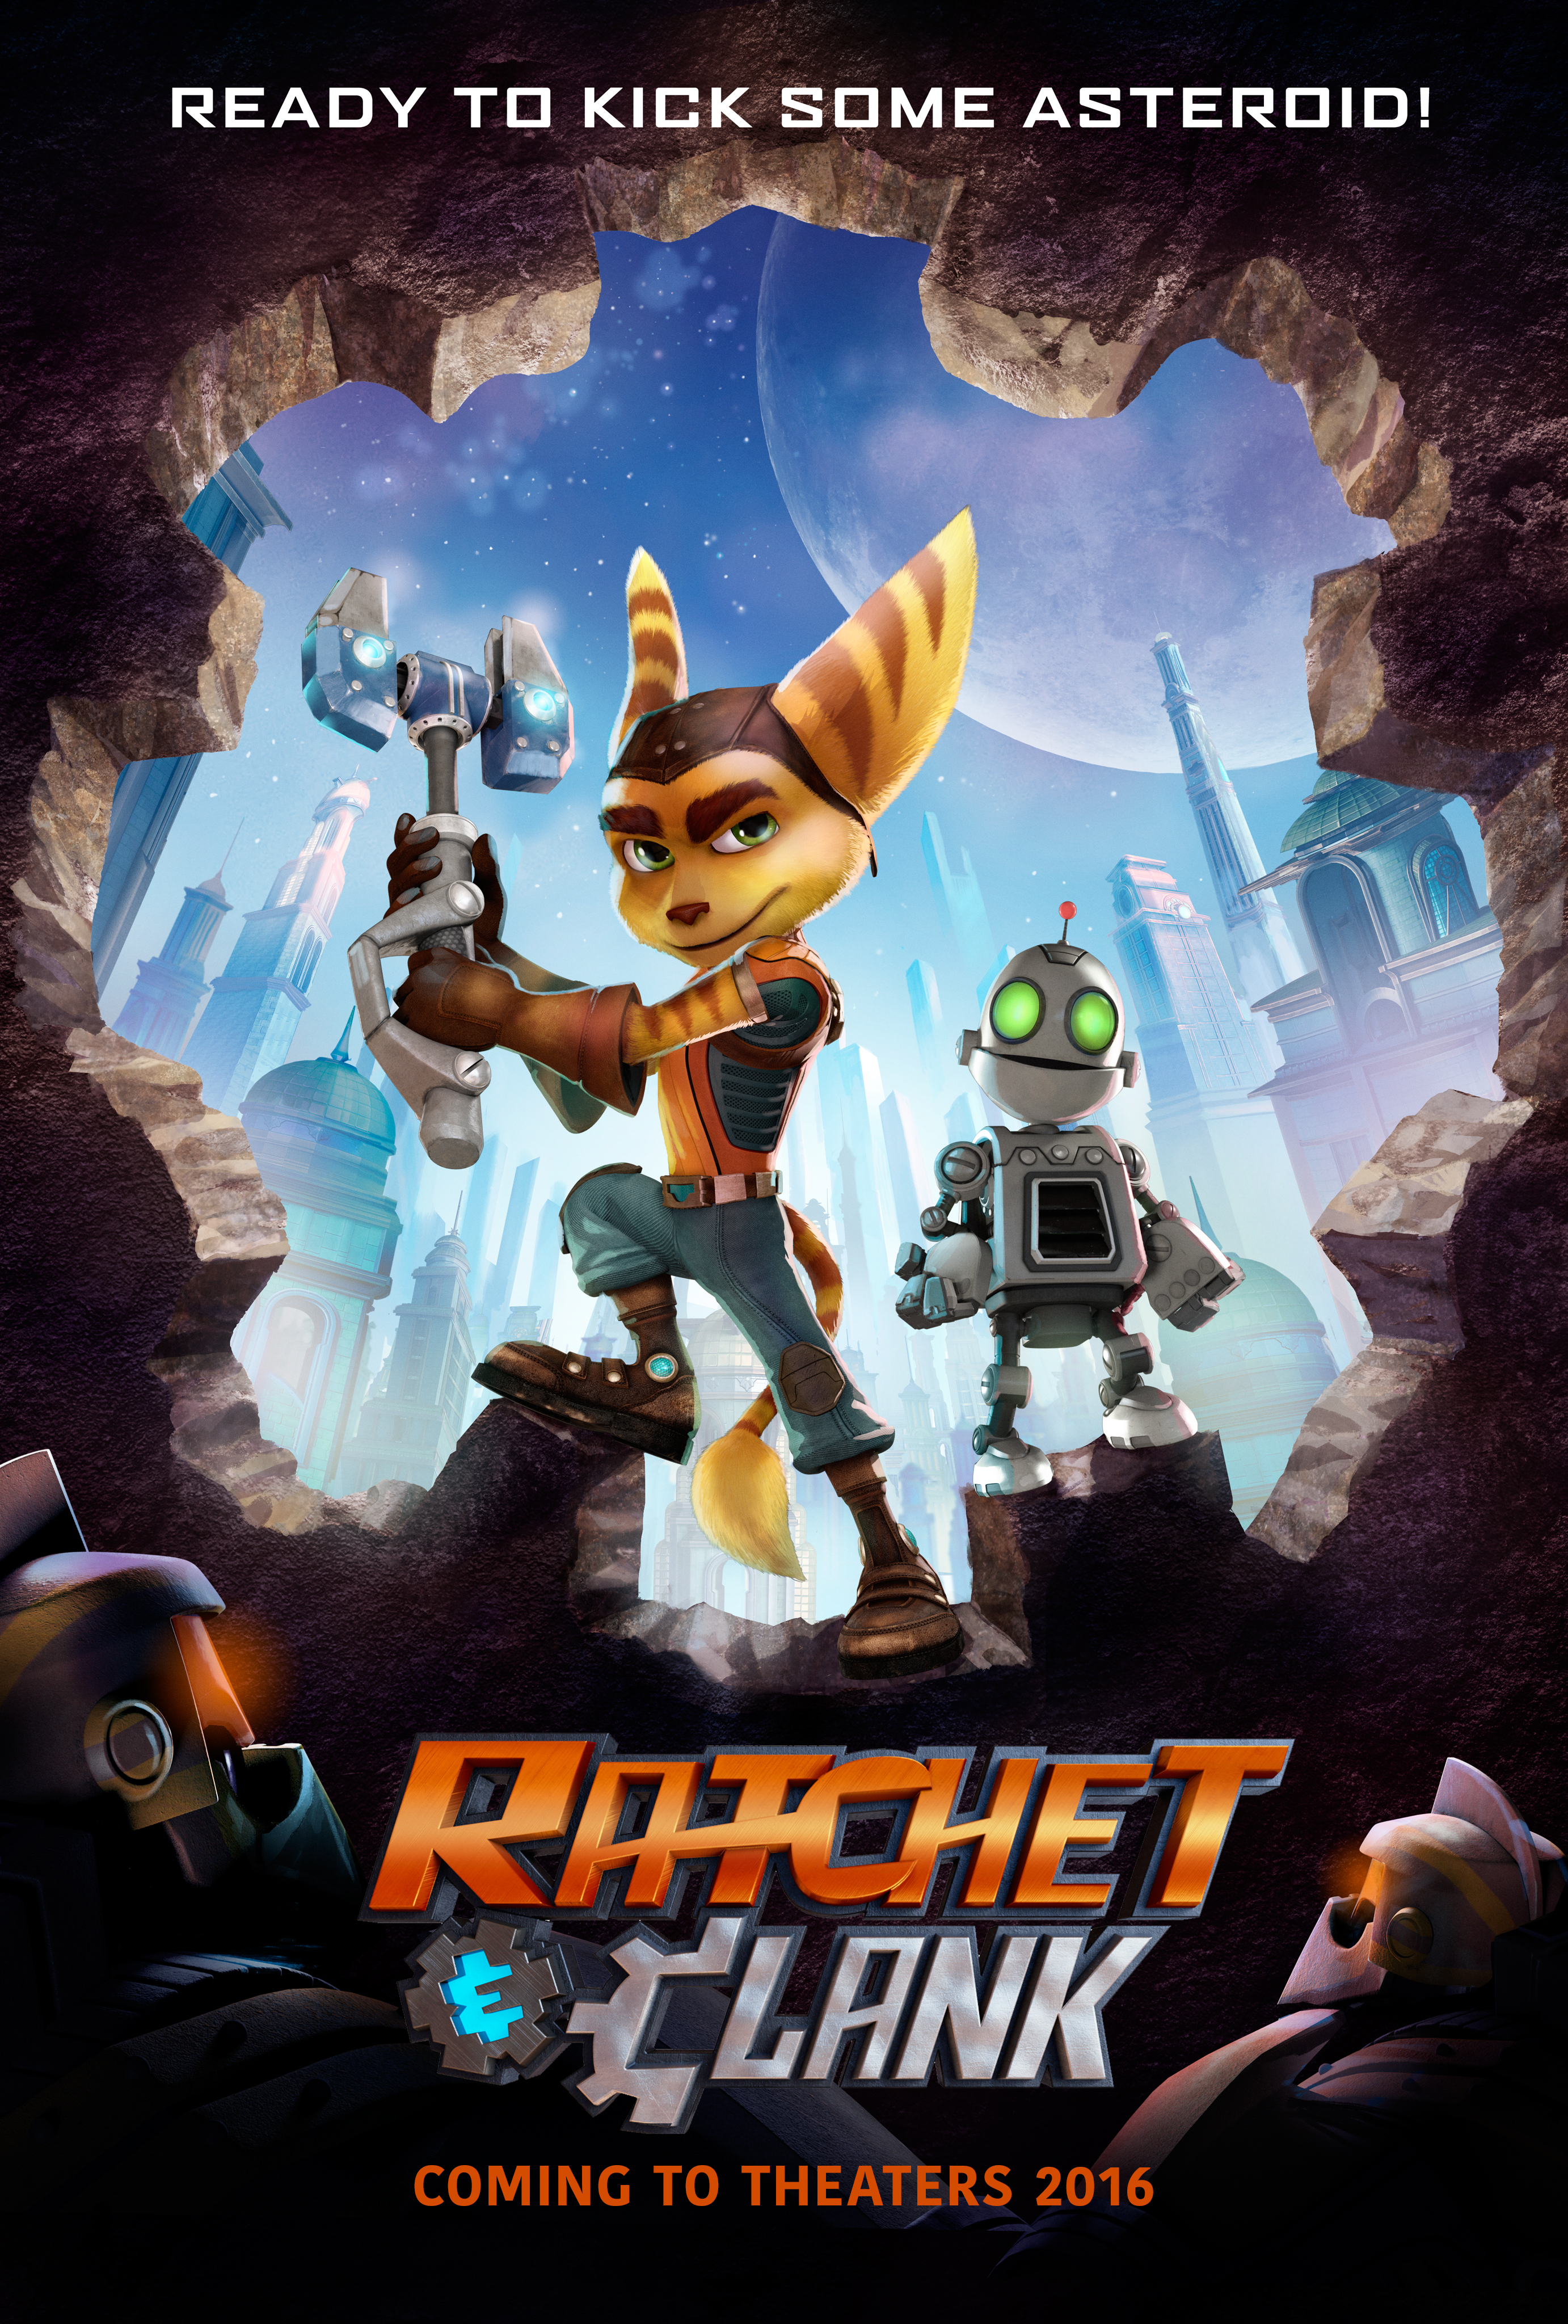 1st Look: 'Ratchet & Clank' Trailer